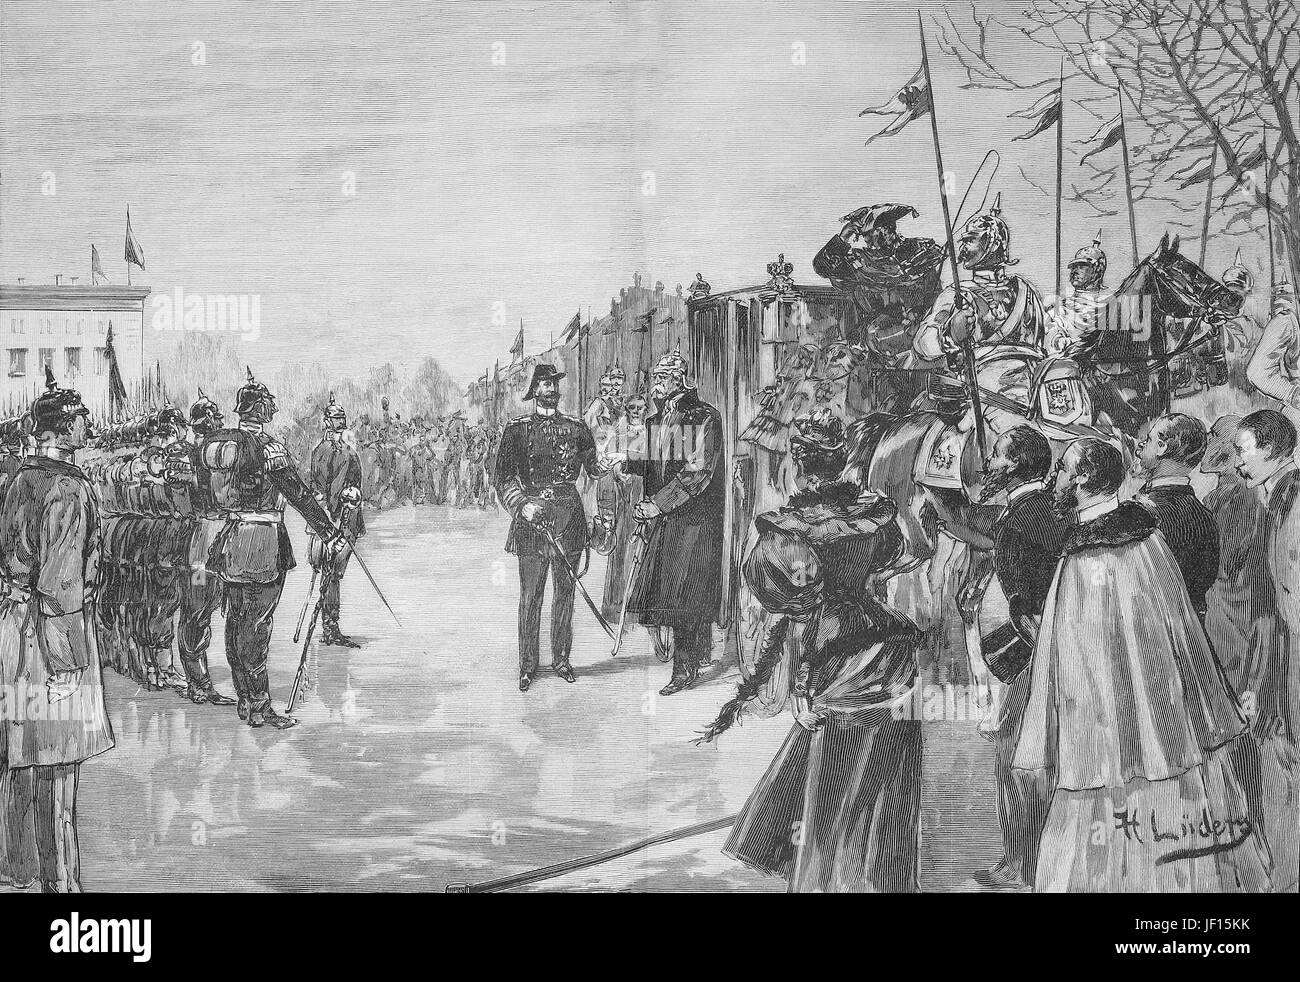 Historical illustration of the visit of Bismarck in Berlin, Germany. Here his arriving at the Lustgarten, together with price Heinrich. Otto von Bismarck, 1815 - 1898, Prussian statesman and first Chancellor of Germany, Digital improved reproduction from an original print from 1888 Stock Photo